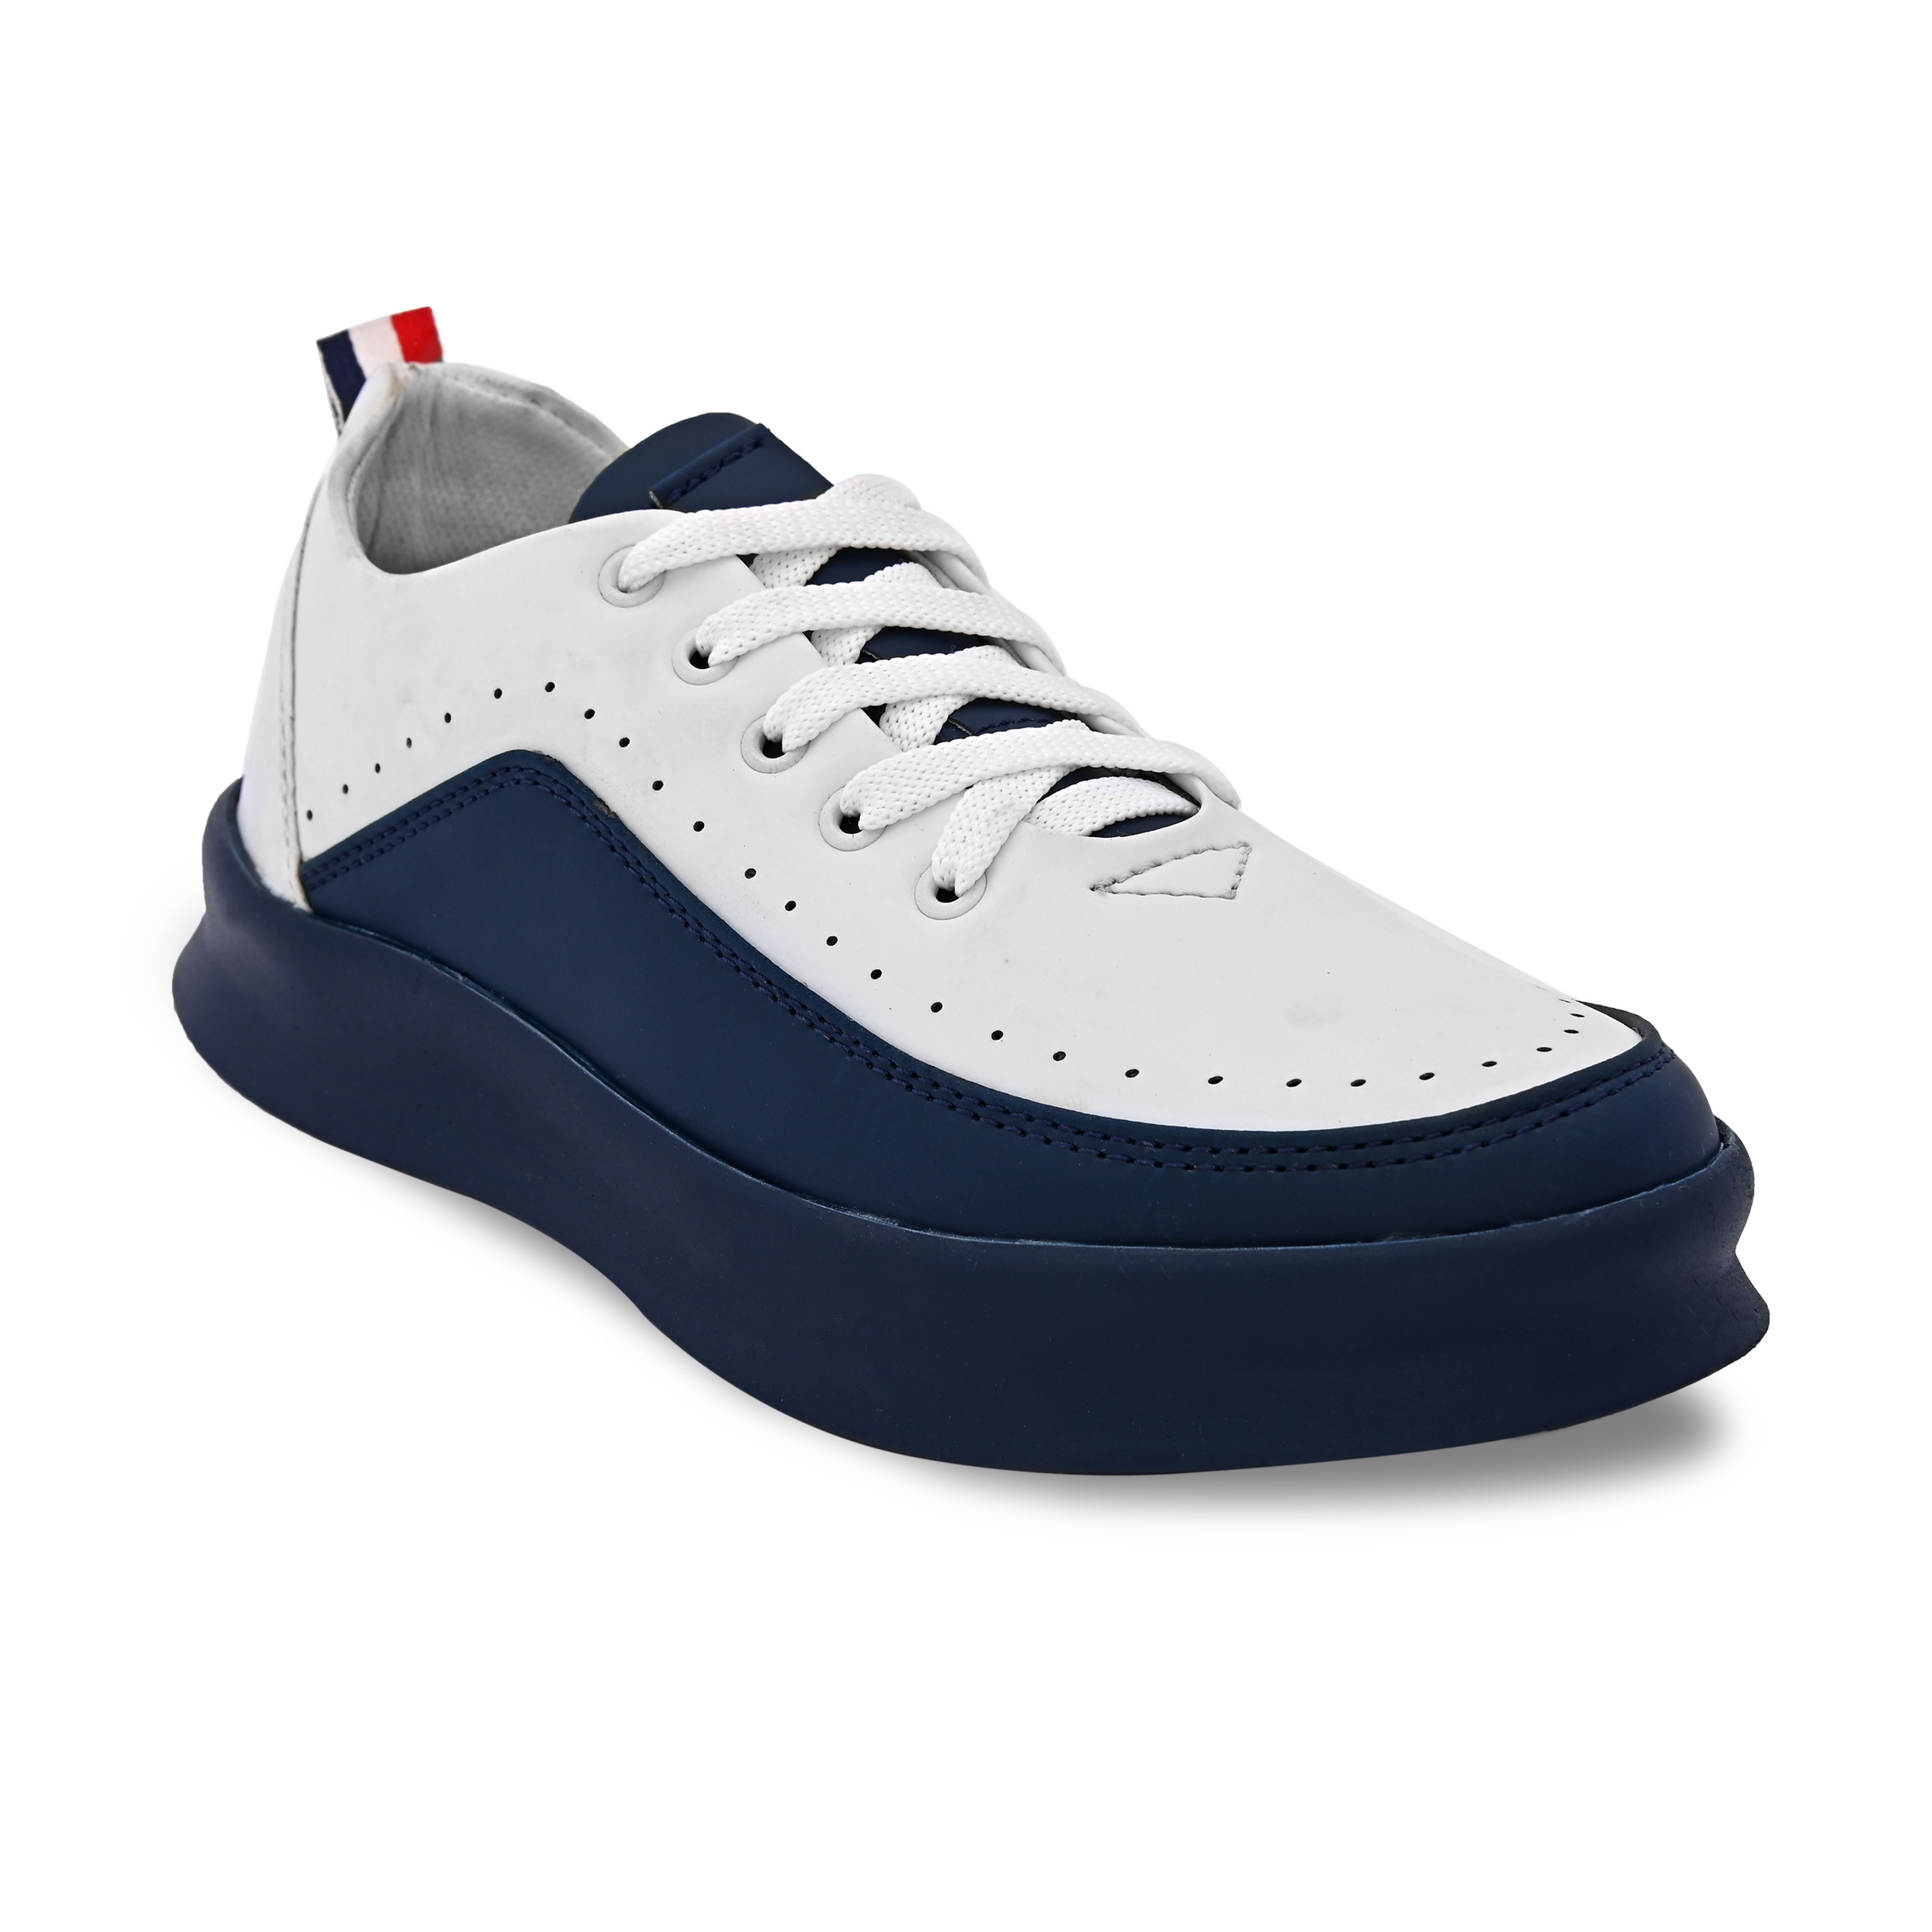 Almighty White Sneaker Sports Shoes (White, 6-10, 8 PAIRS)